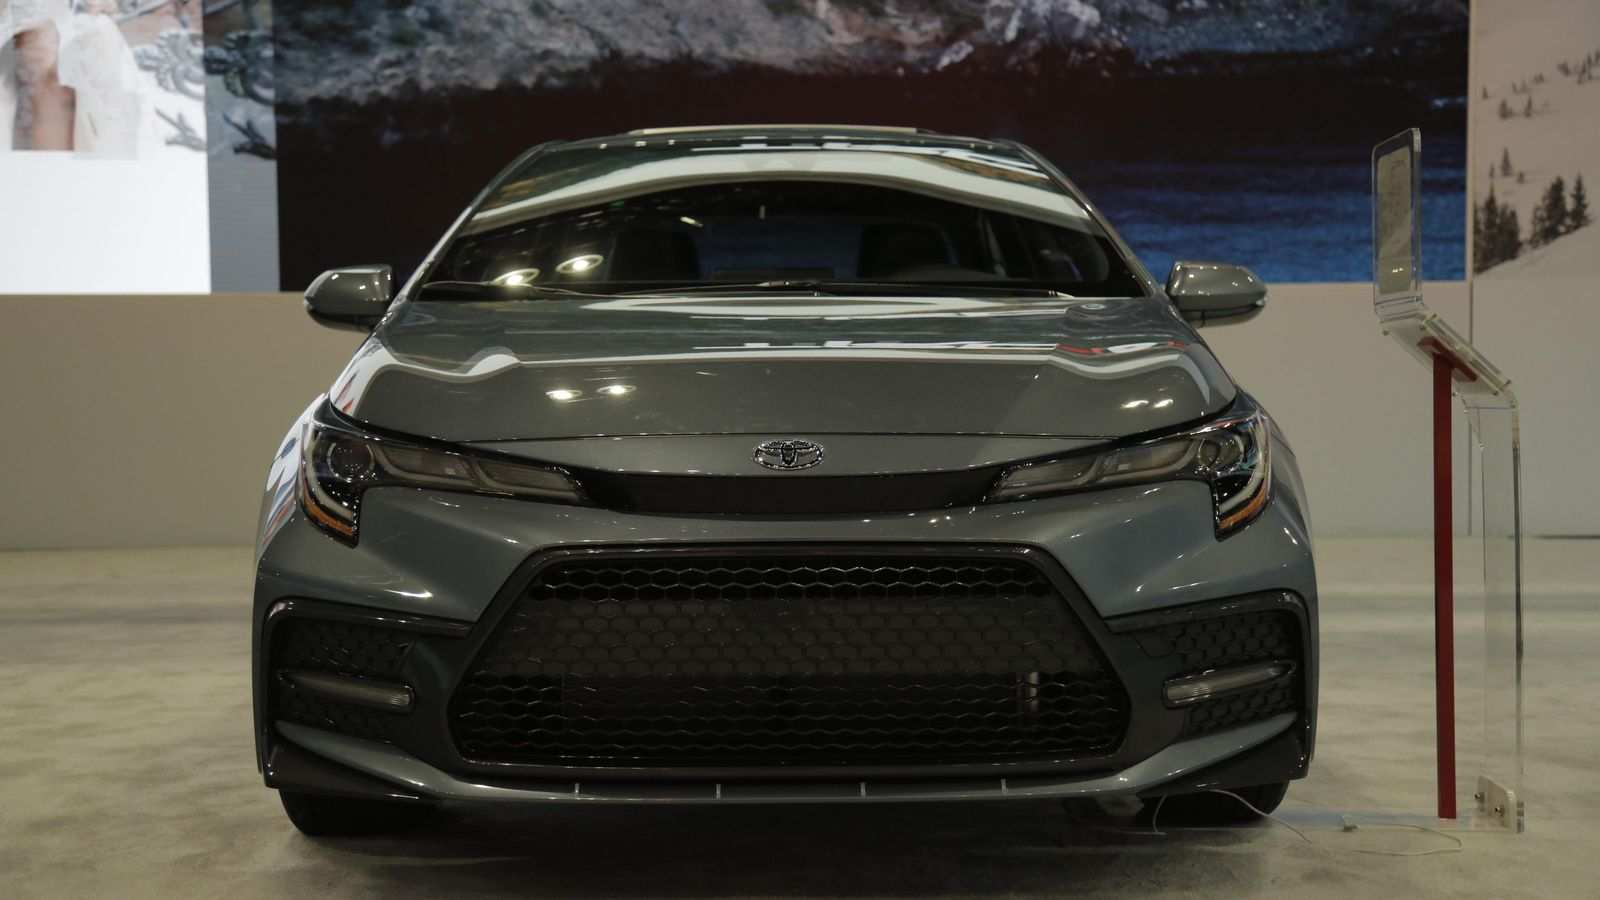 55 Best Review Toyota En 2020 Prices with Toyota En 2020